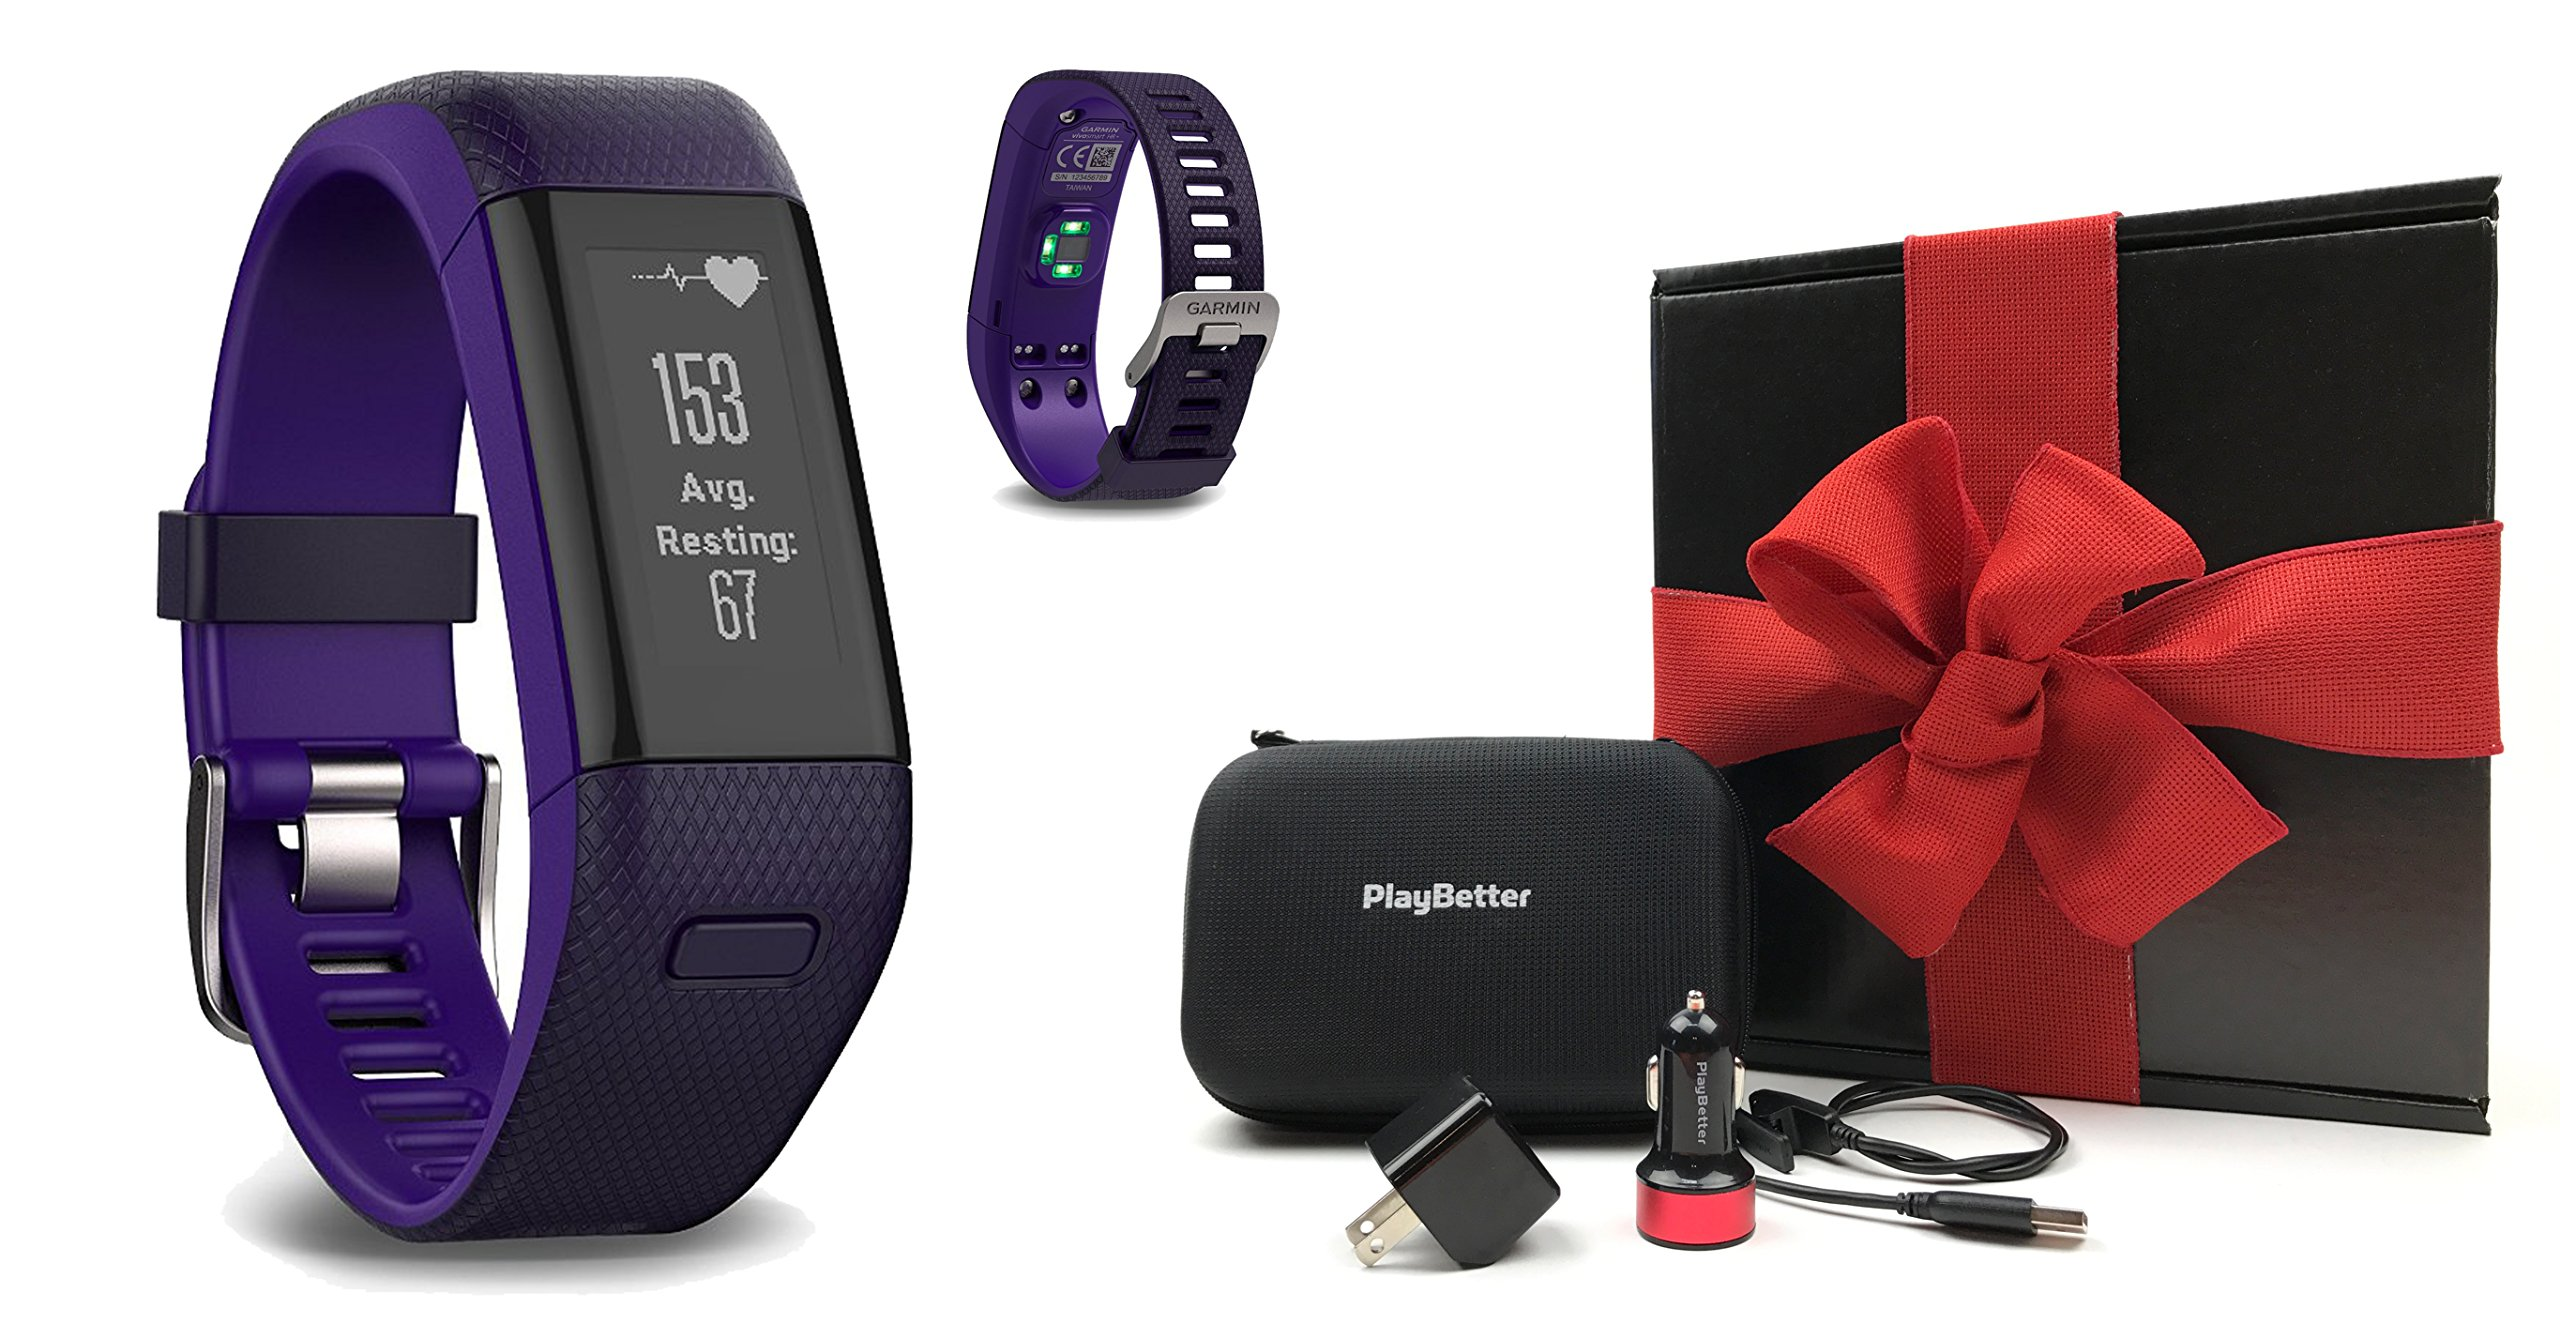 Garmin vivosmart HR+ (Purple) GIFT BOX Bundle | Includes GPS Fitness Band/Activity Tracker with Wrist-HR, PlayBetter USB Car/Wall Adapter, Protective Case | Black Gift Box